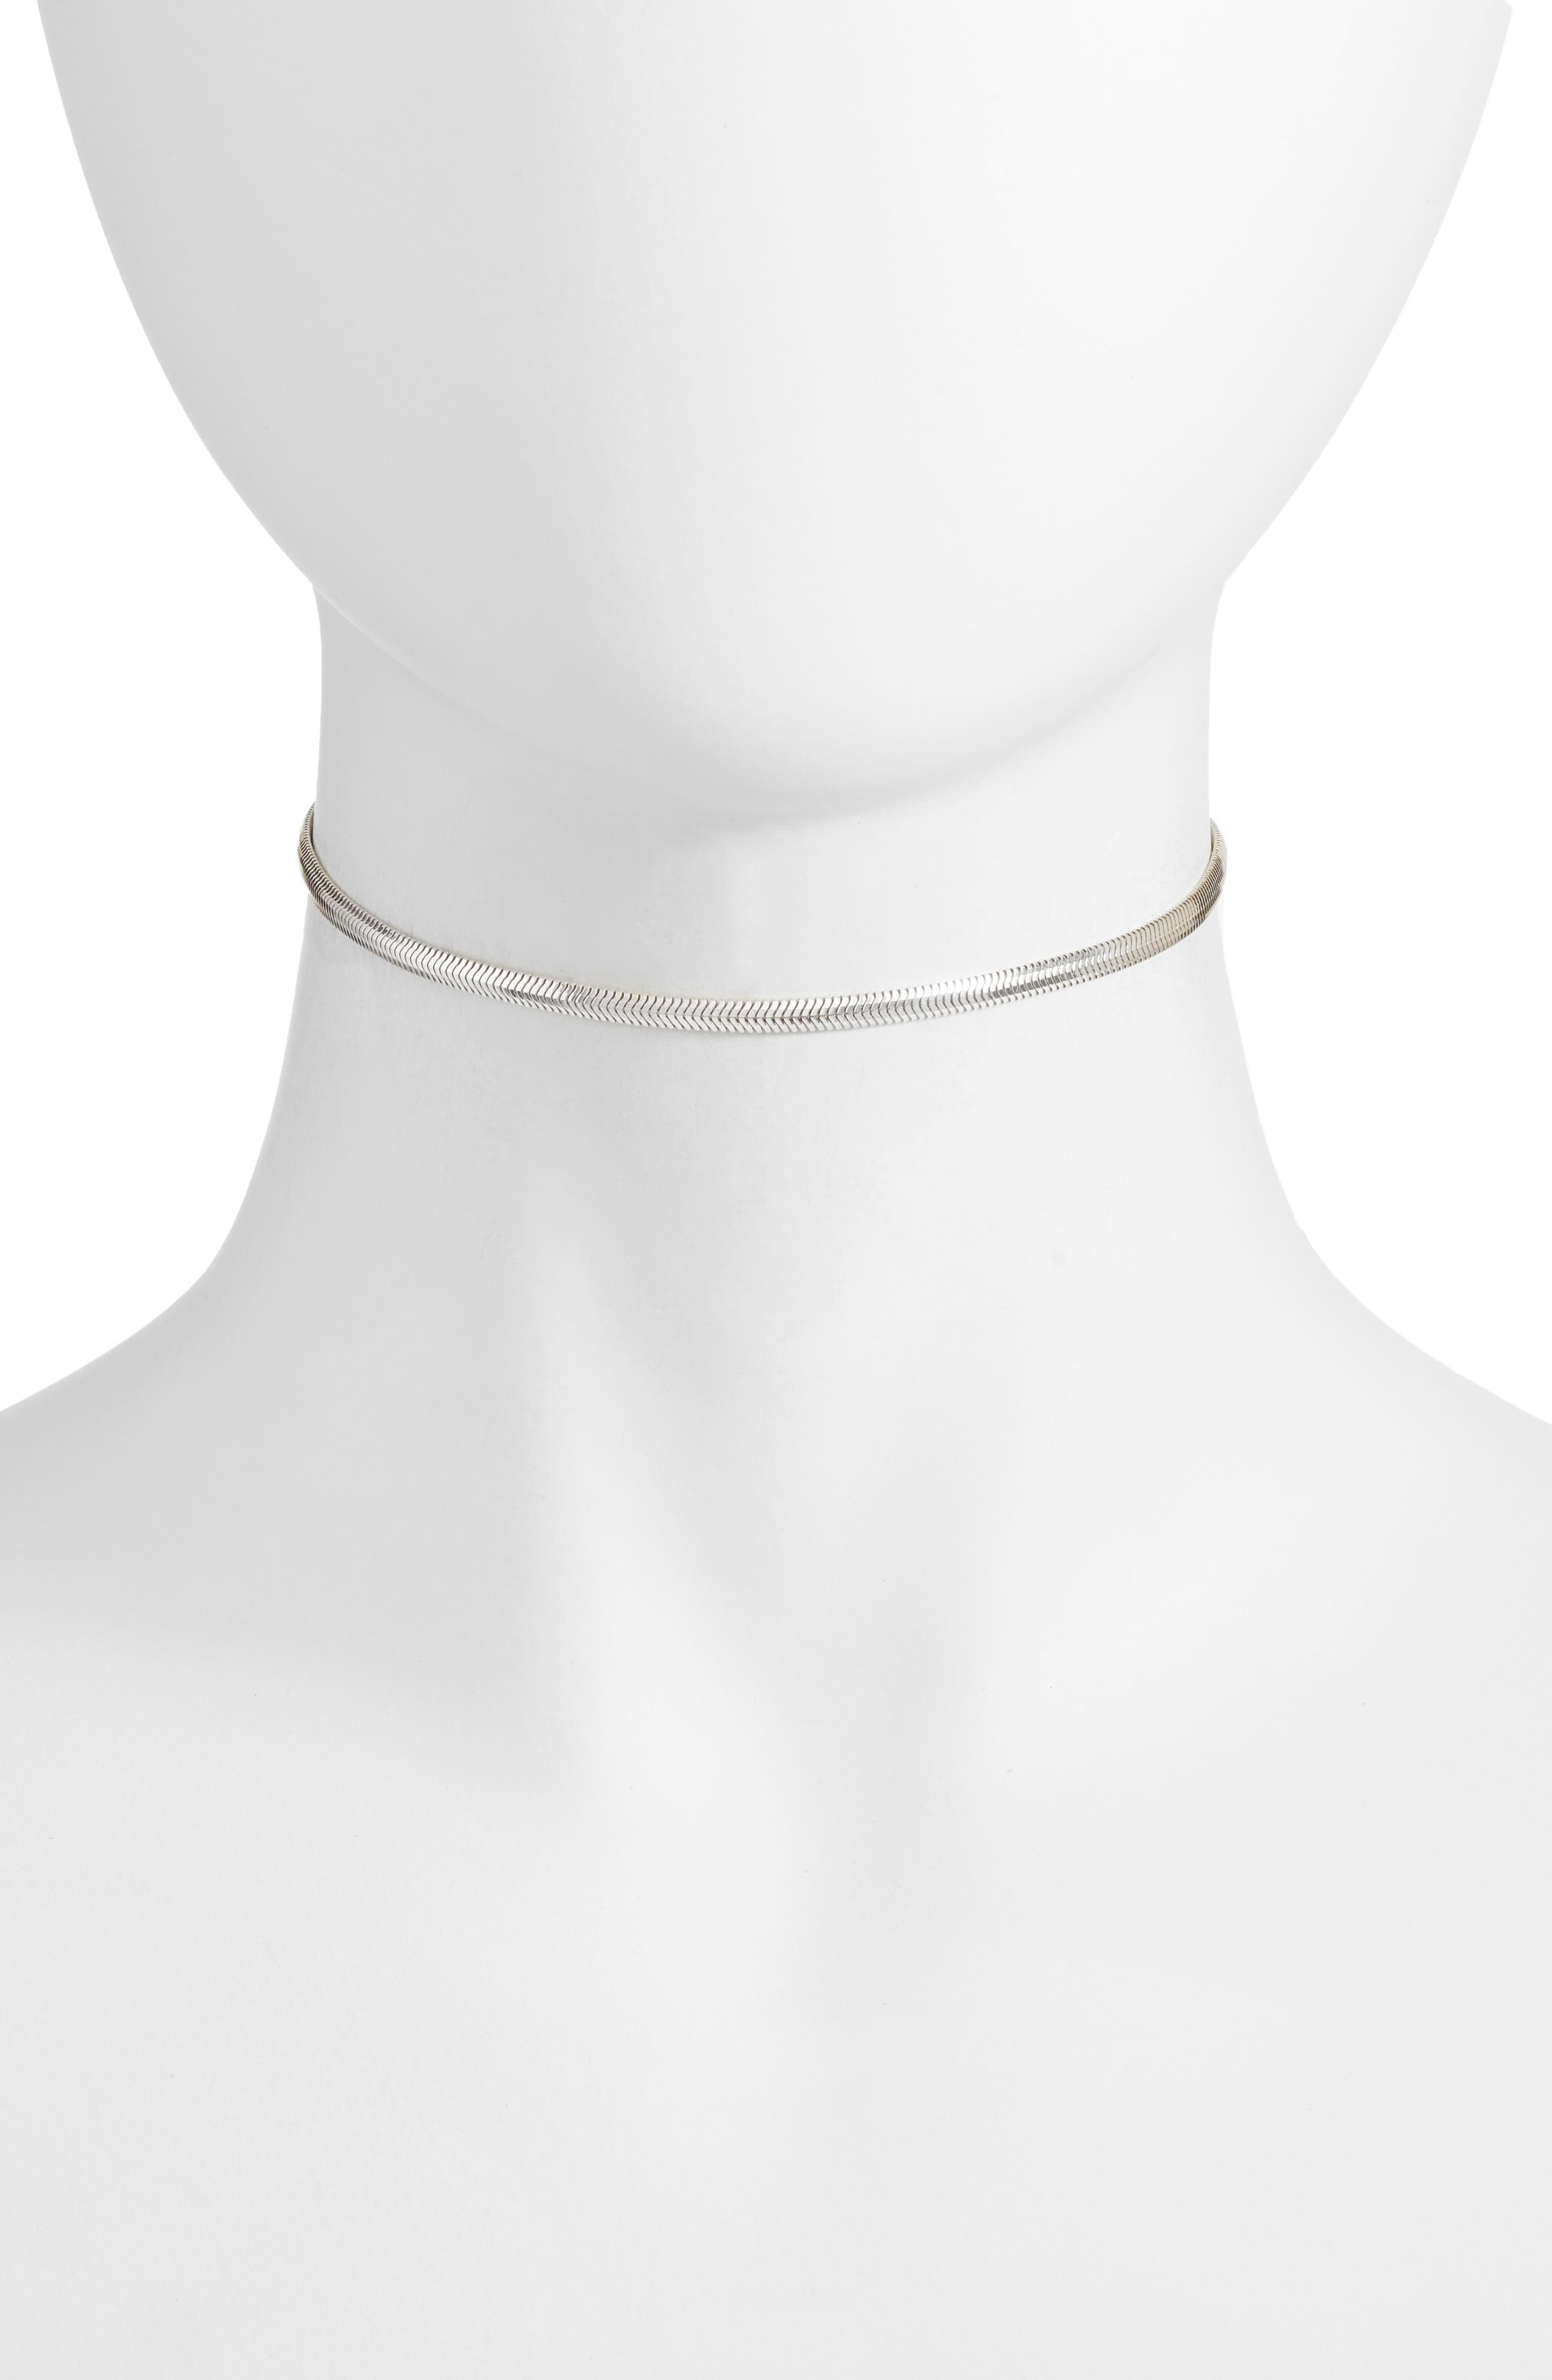 Snake Chain Choker,                         Main,                         color, Silver